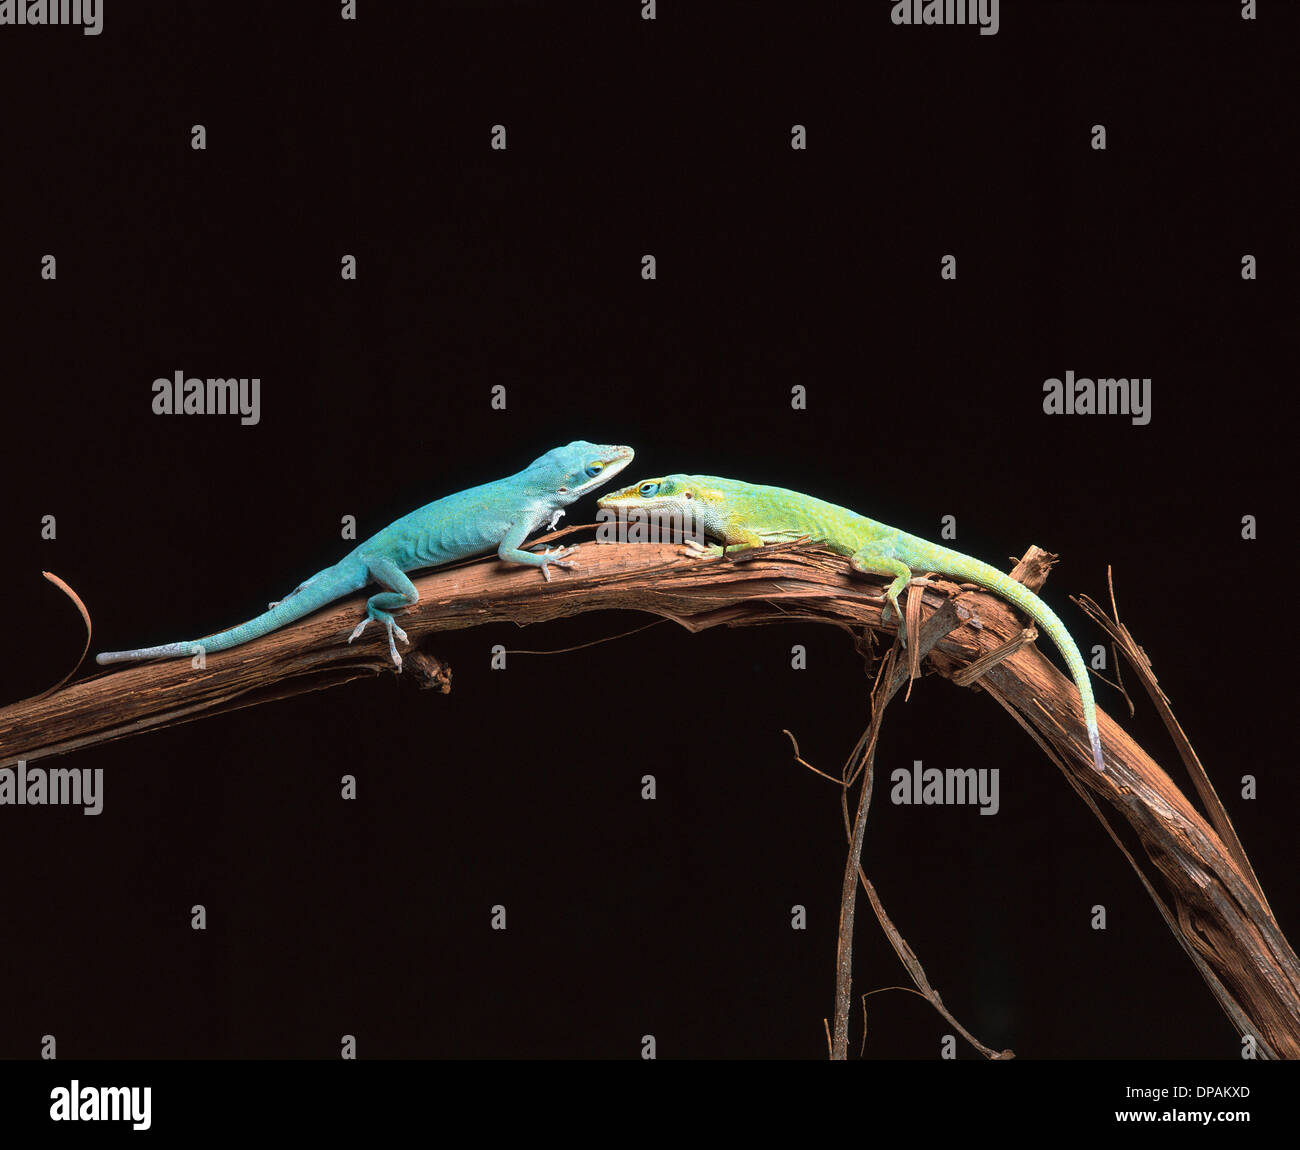 lizards stockfotos lizards bilder alamy. Black Bedroom Furniture Sets. Home Design Ideas